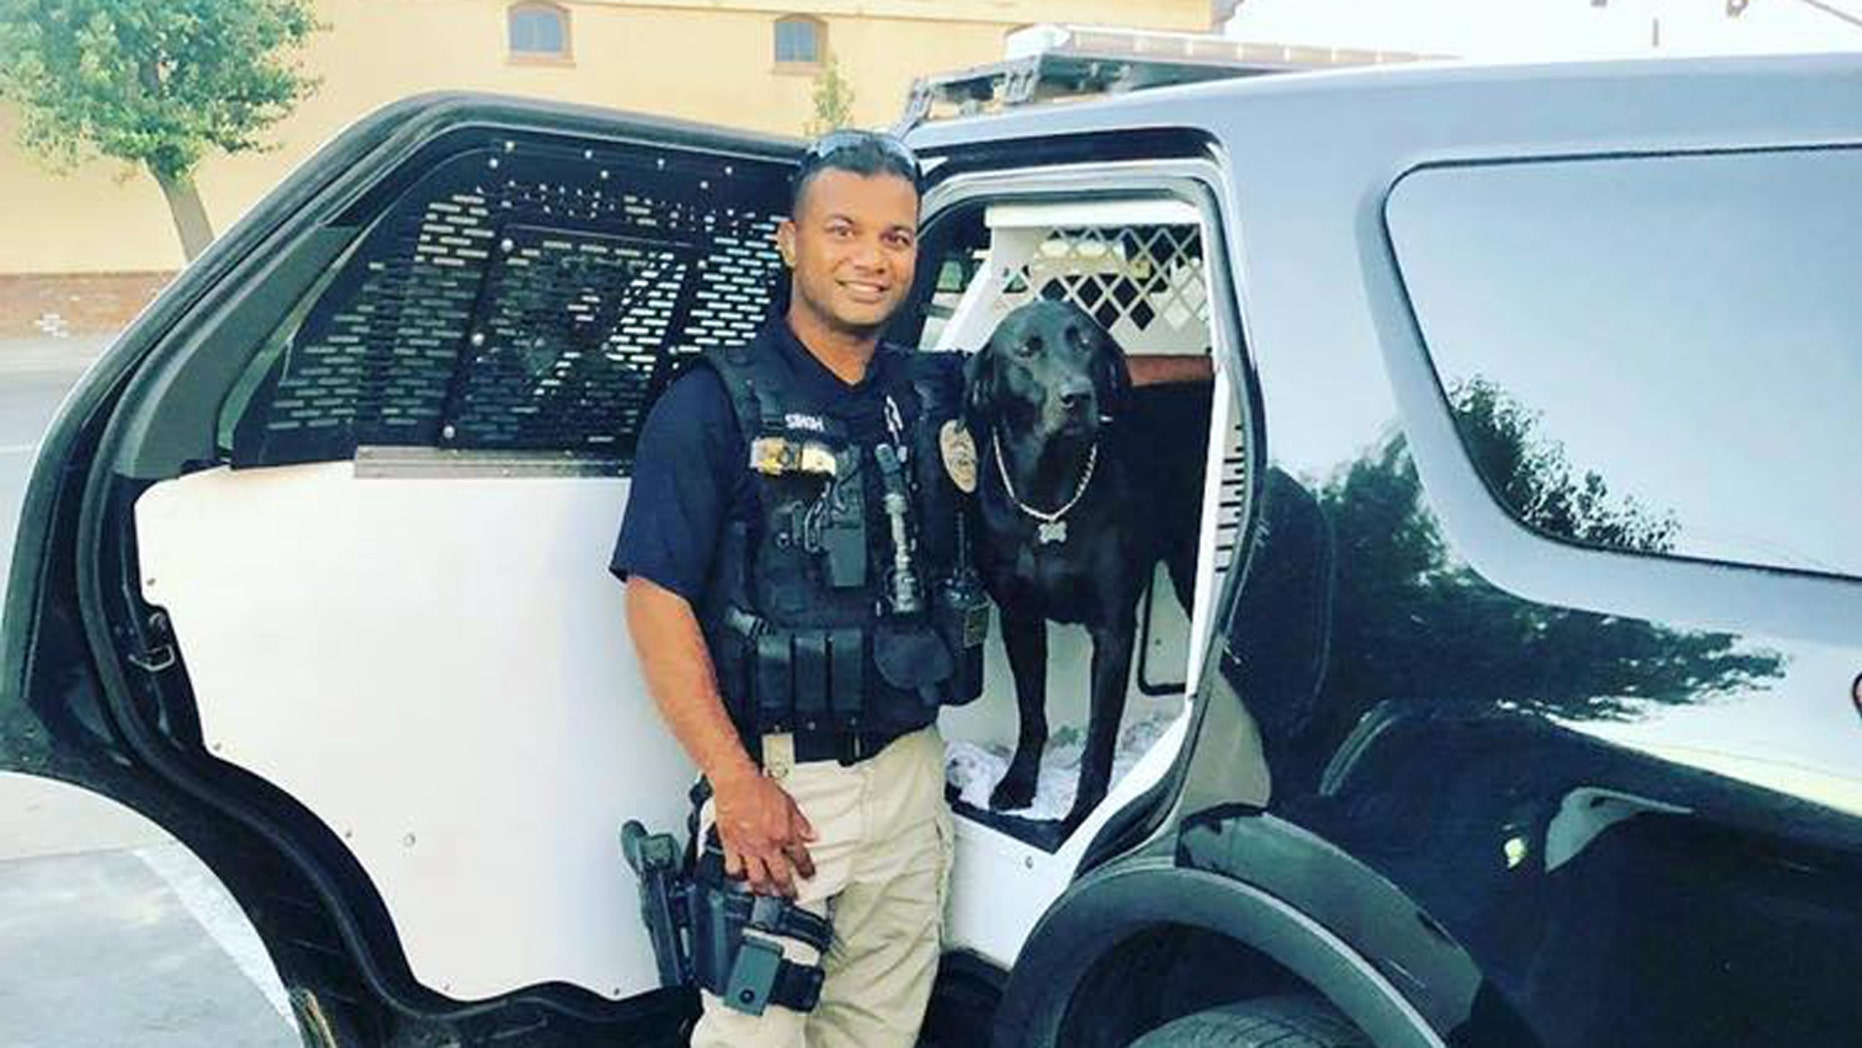 Sheriff blames California law for officer's death